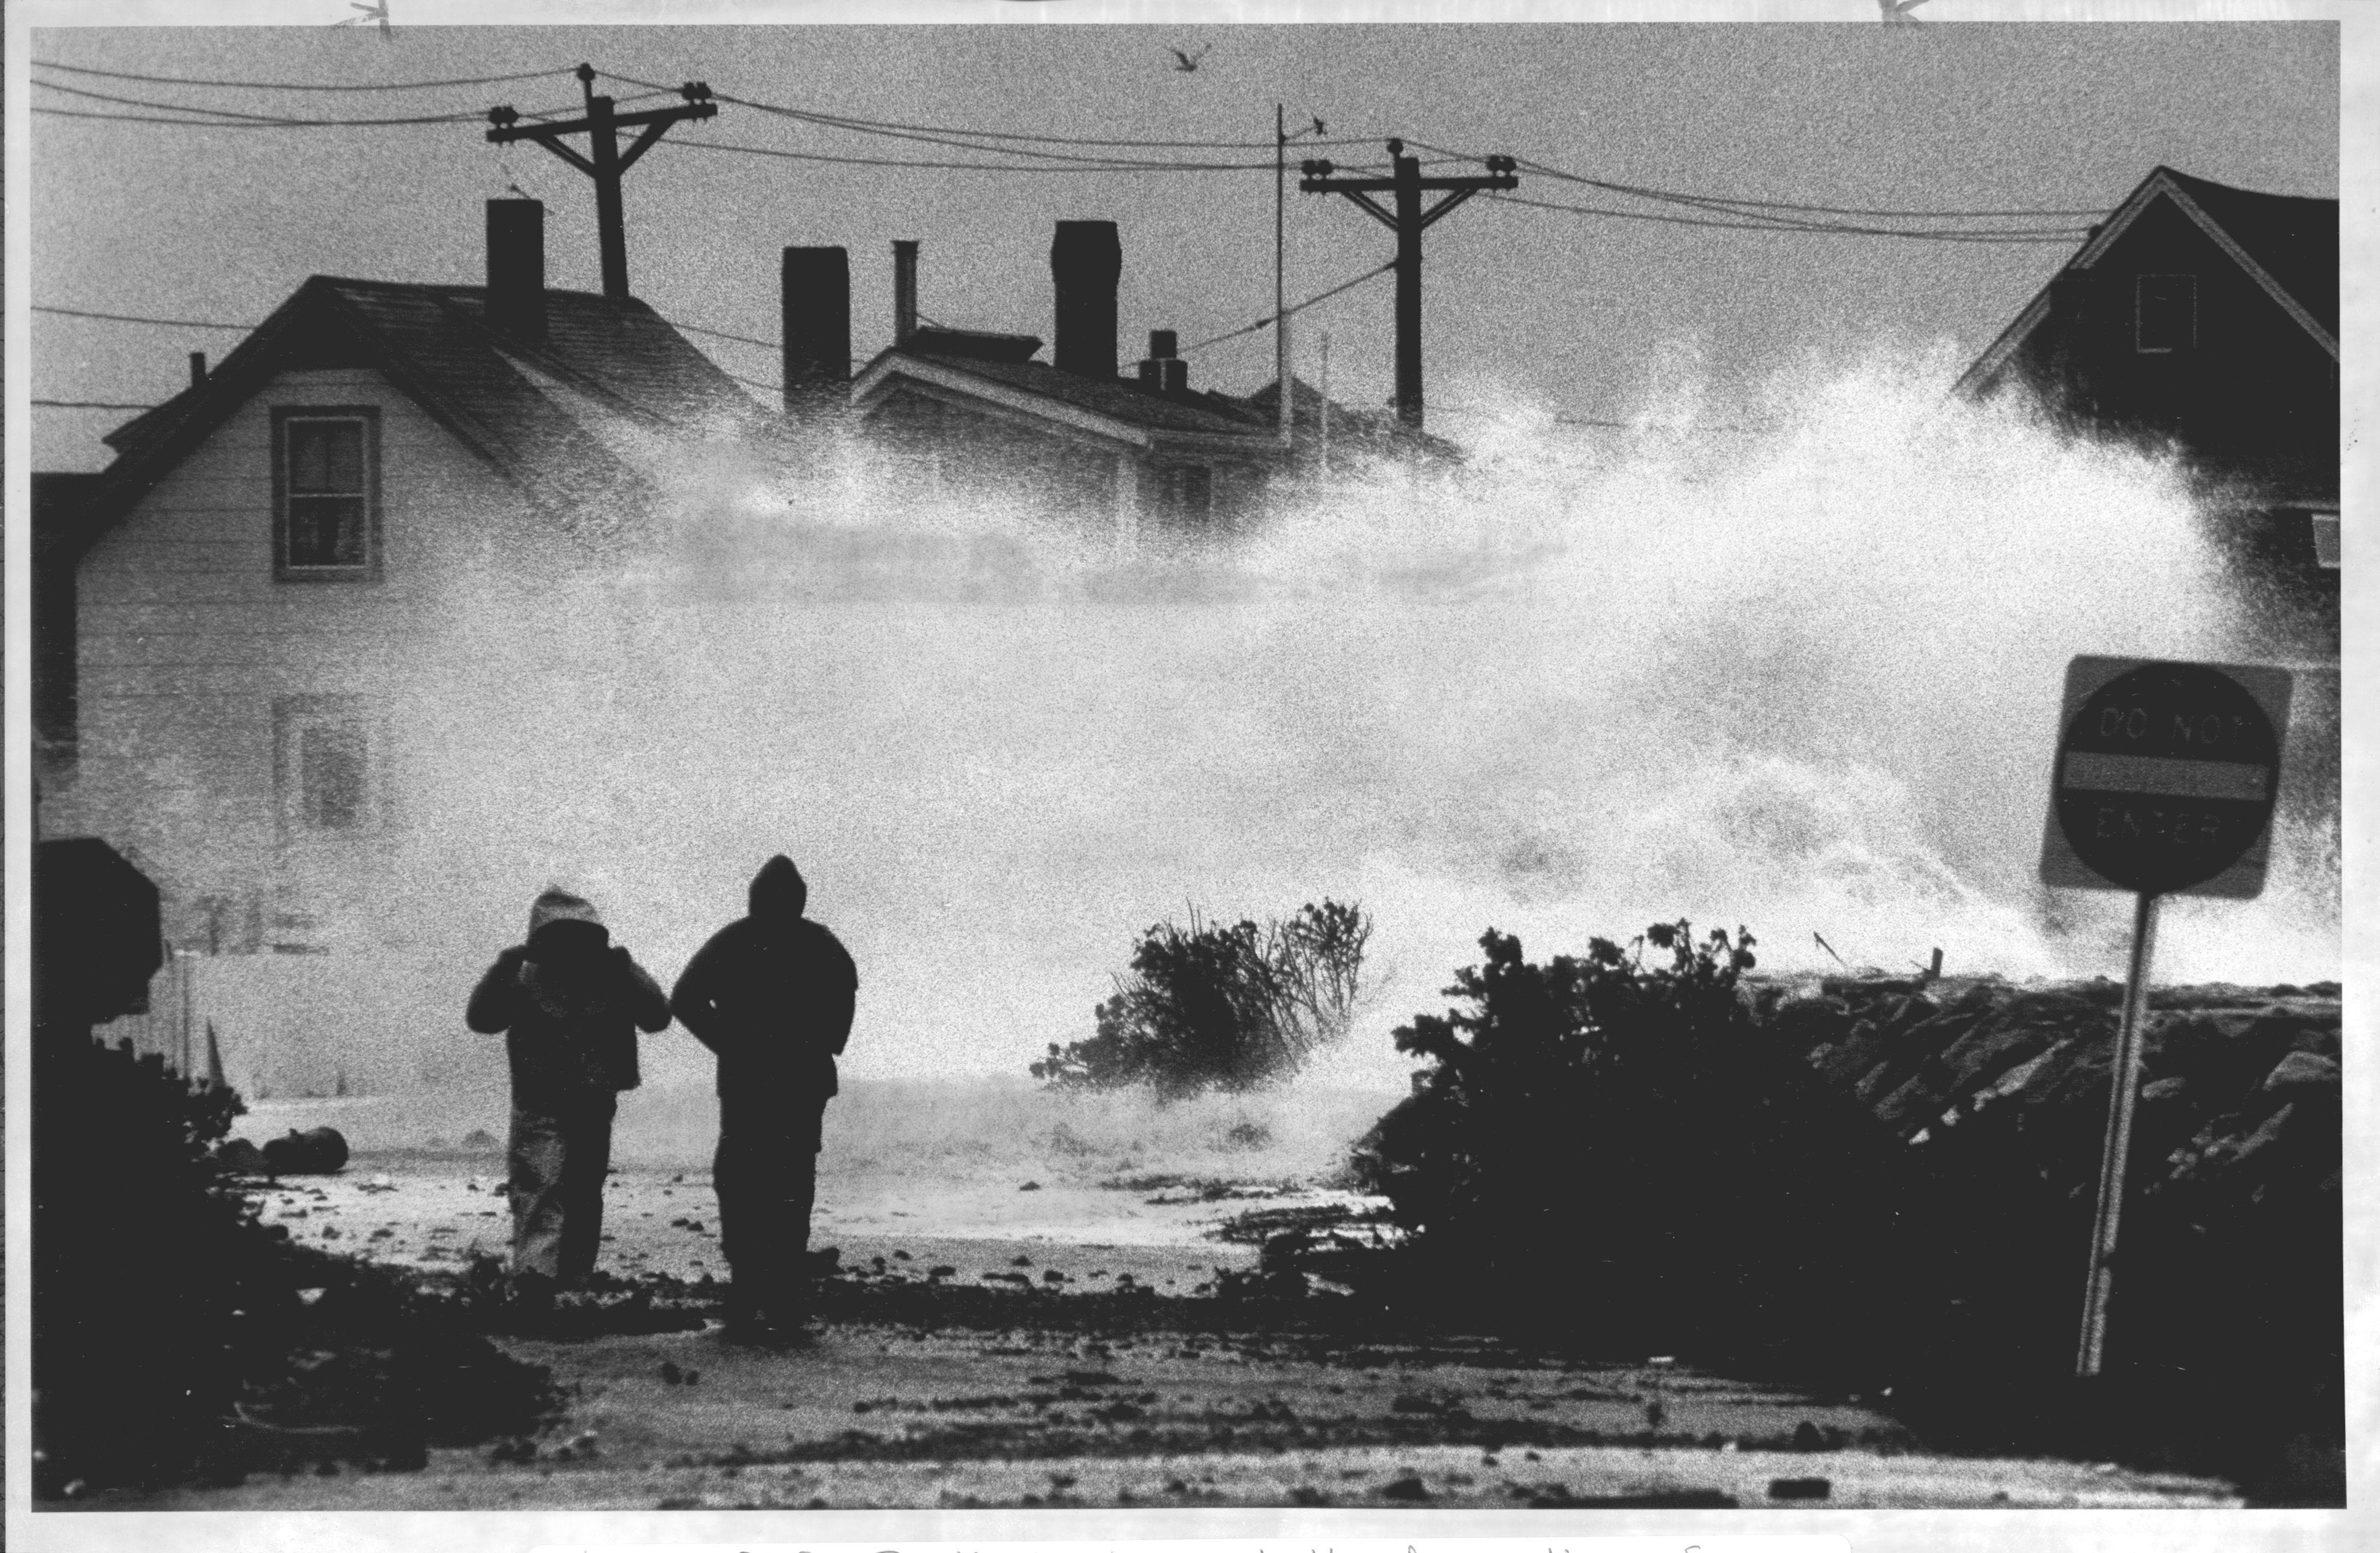 FROM MERLIN ARCHIVE, DON NOT RESEND TO LIBRARY 10/30/1991 Hull, MA. Residents leave battered section of Nantasket Ave. in Hull. BGB 'NO NAME STORM' OPS BG STORE 03timeline Library Tag 04032011 Globe South